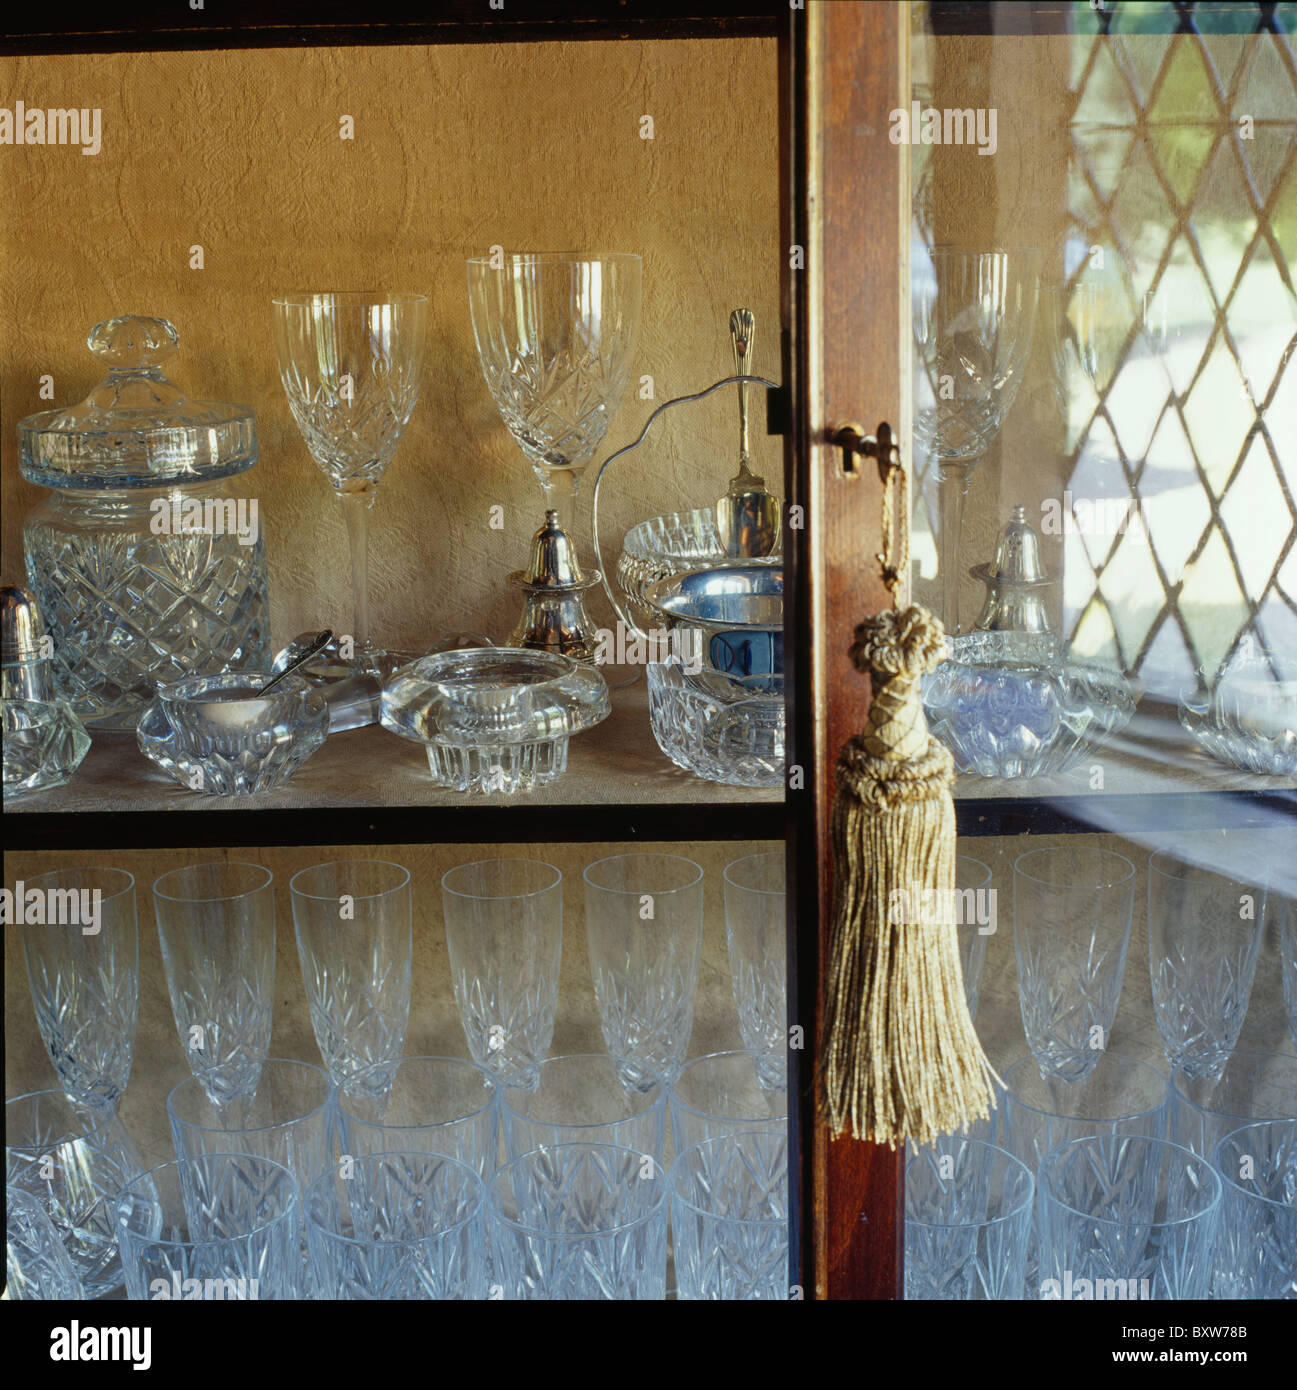 Close Up Of Tassel On Glass Door Antique Cupboard With Display Wine Glasses And Salt Pots